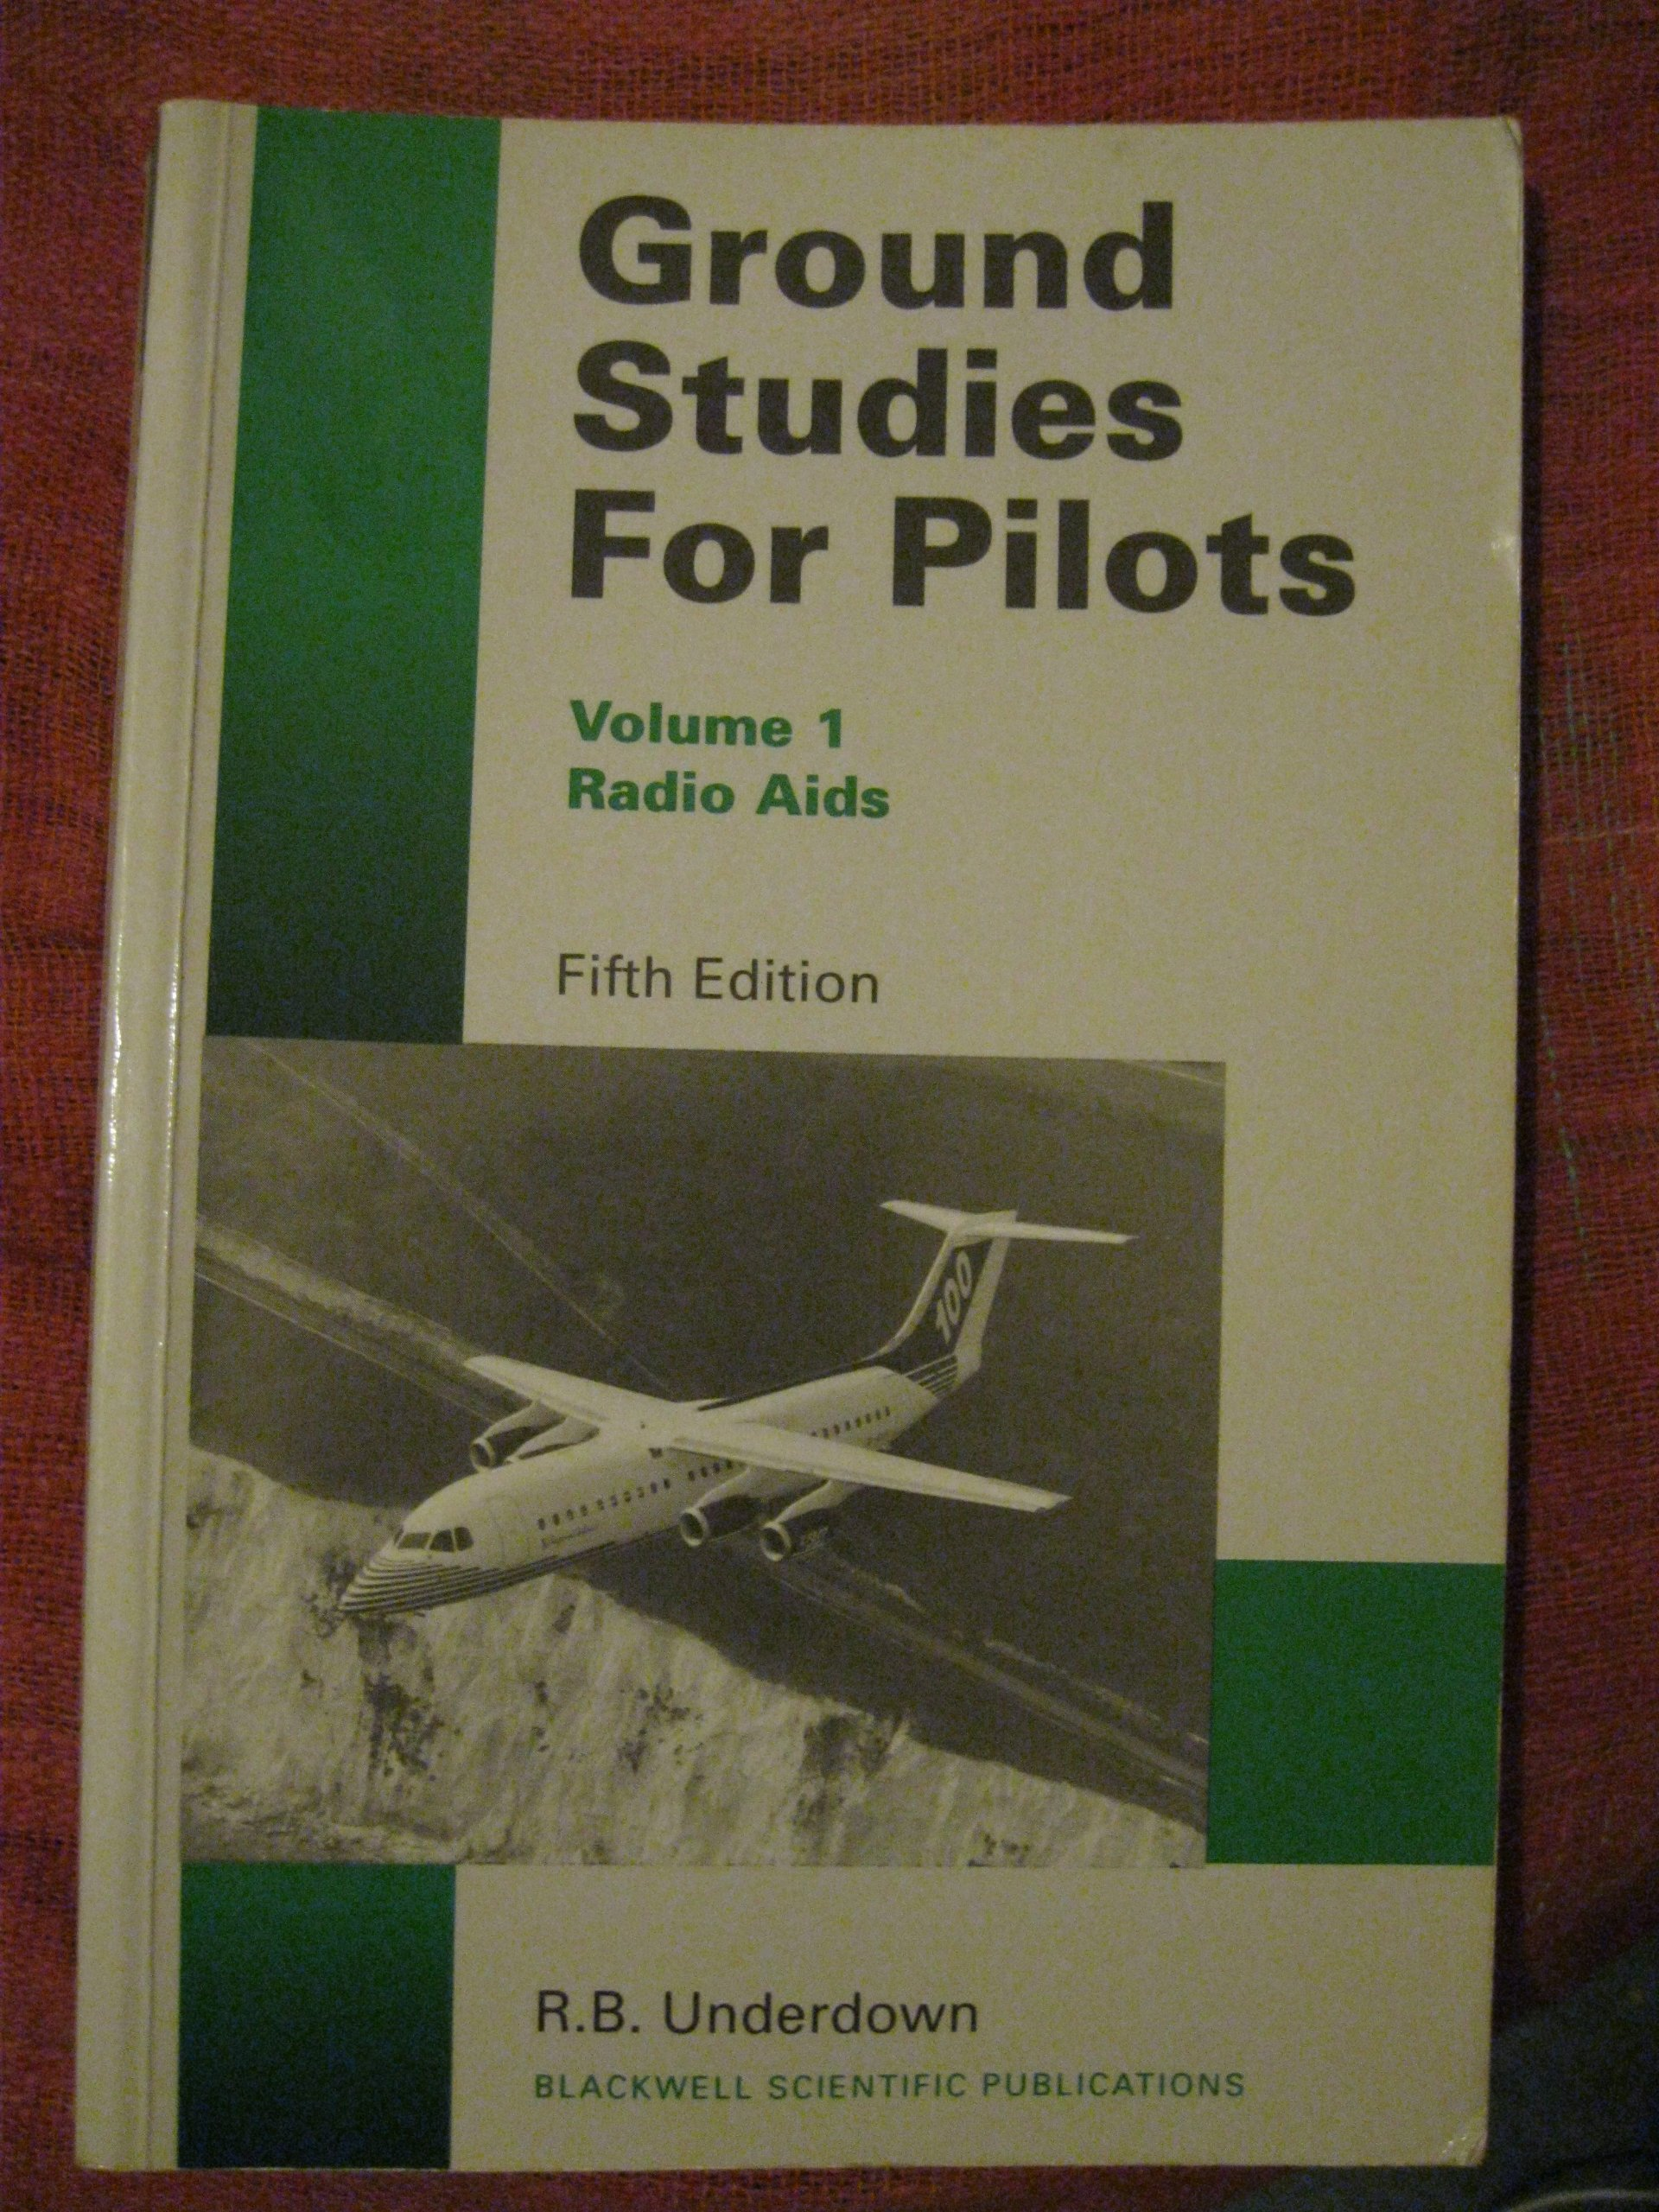 Buy Ground Studies for Pilots - Vol 1 Radio Aids Book Online at Low Prices  in India | Ground Studies for Pilots - Vol 1 Radio Aids Reviews & Ratings  ...